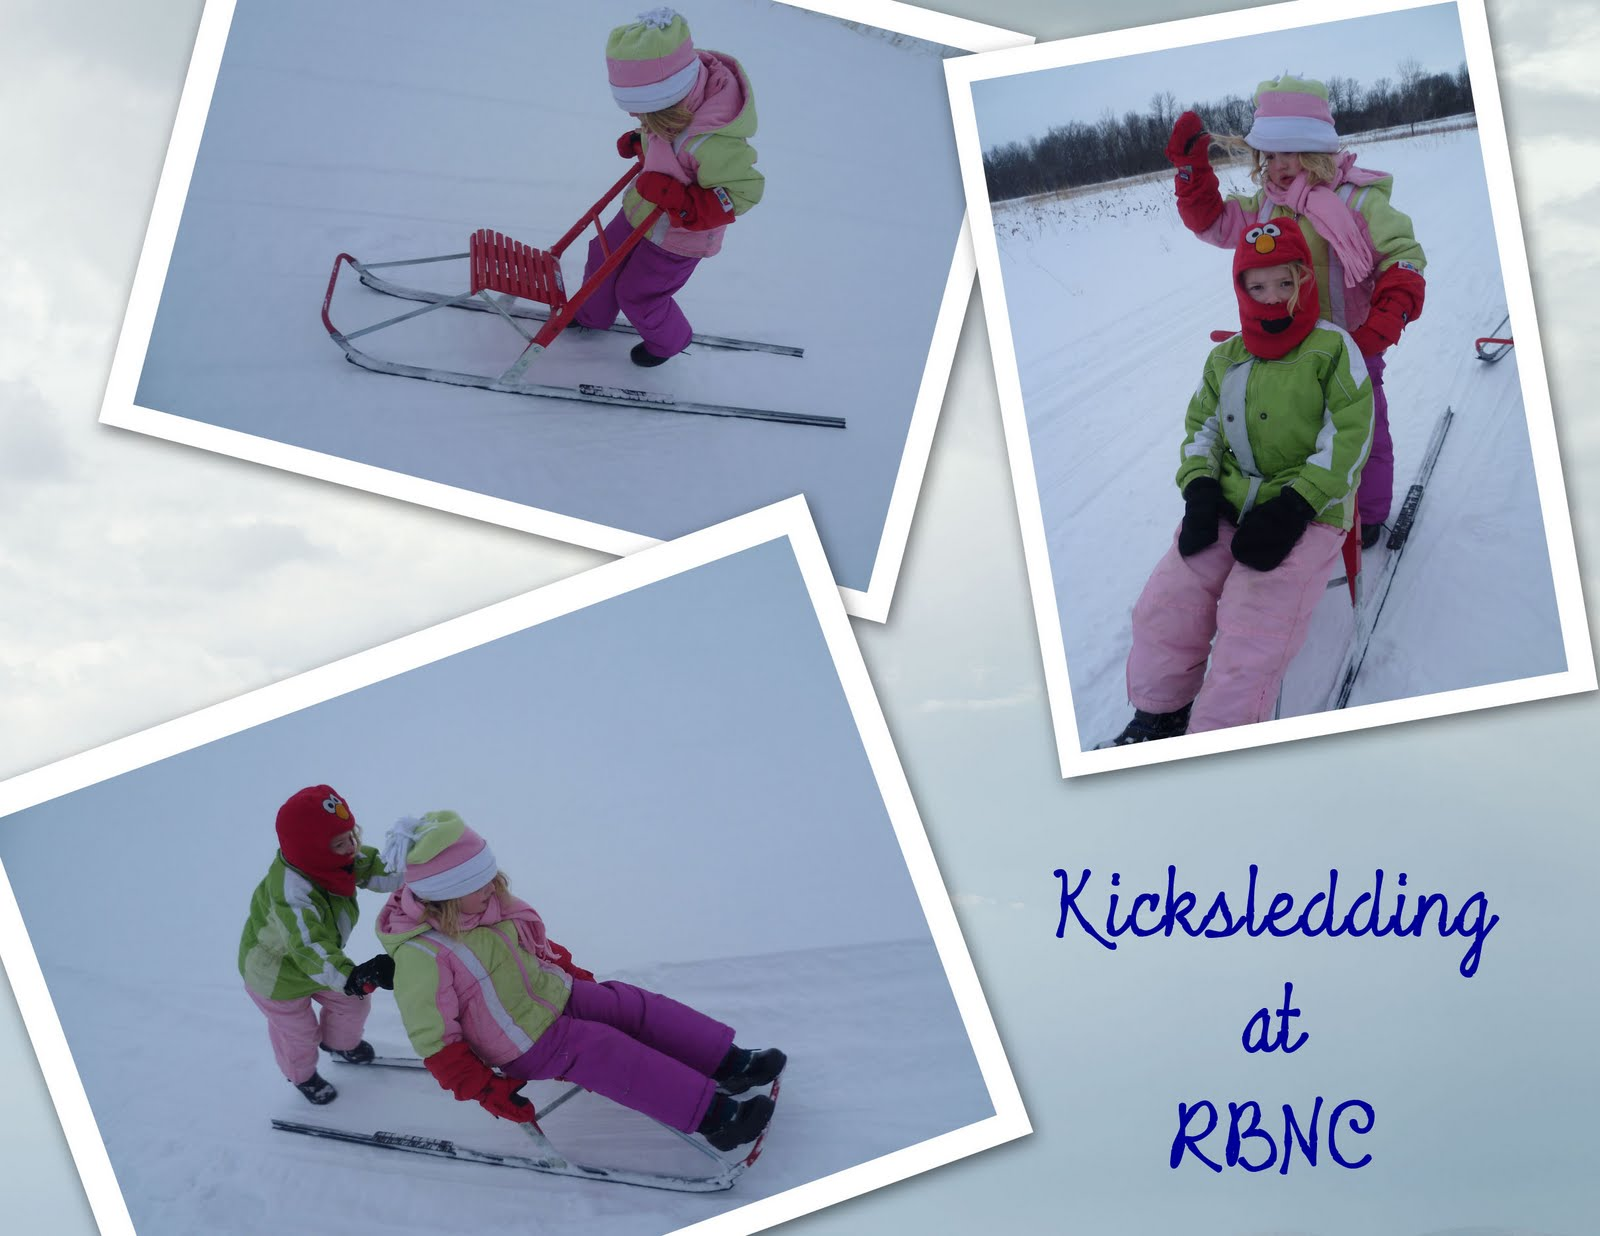 Kicksledding